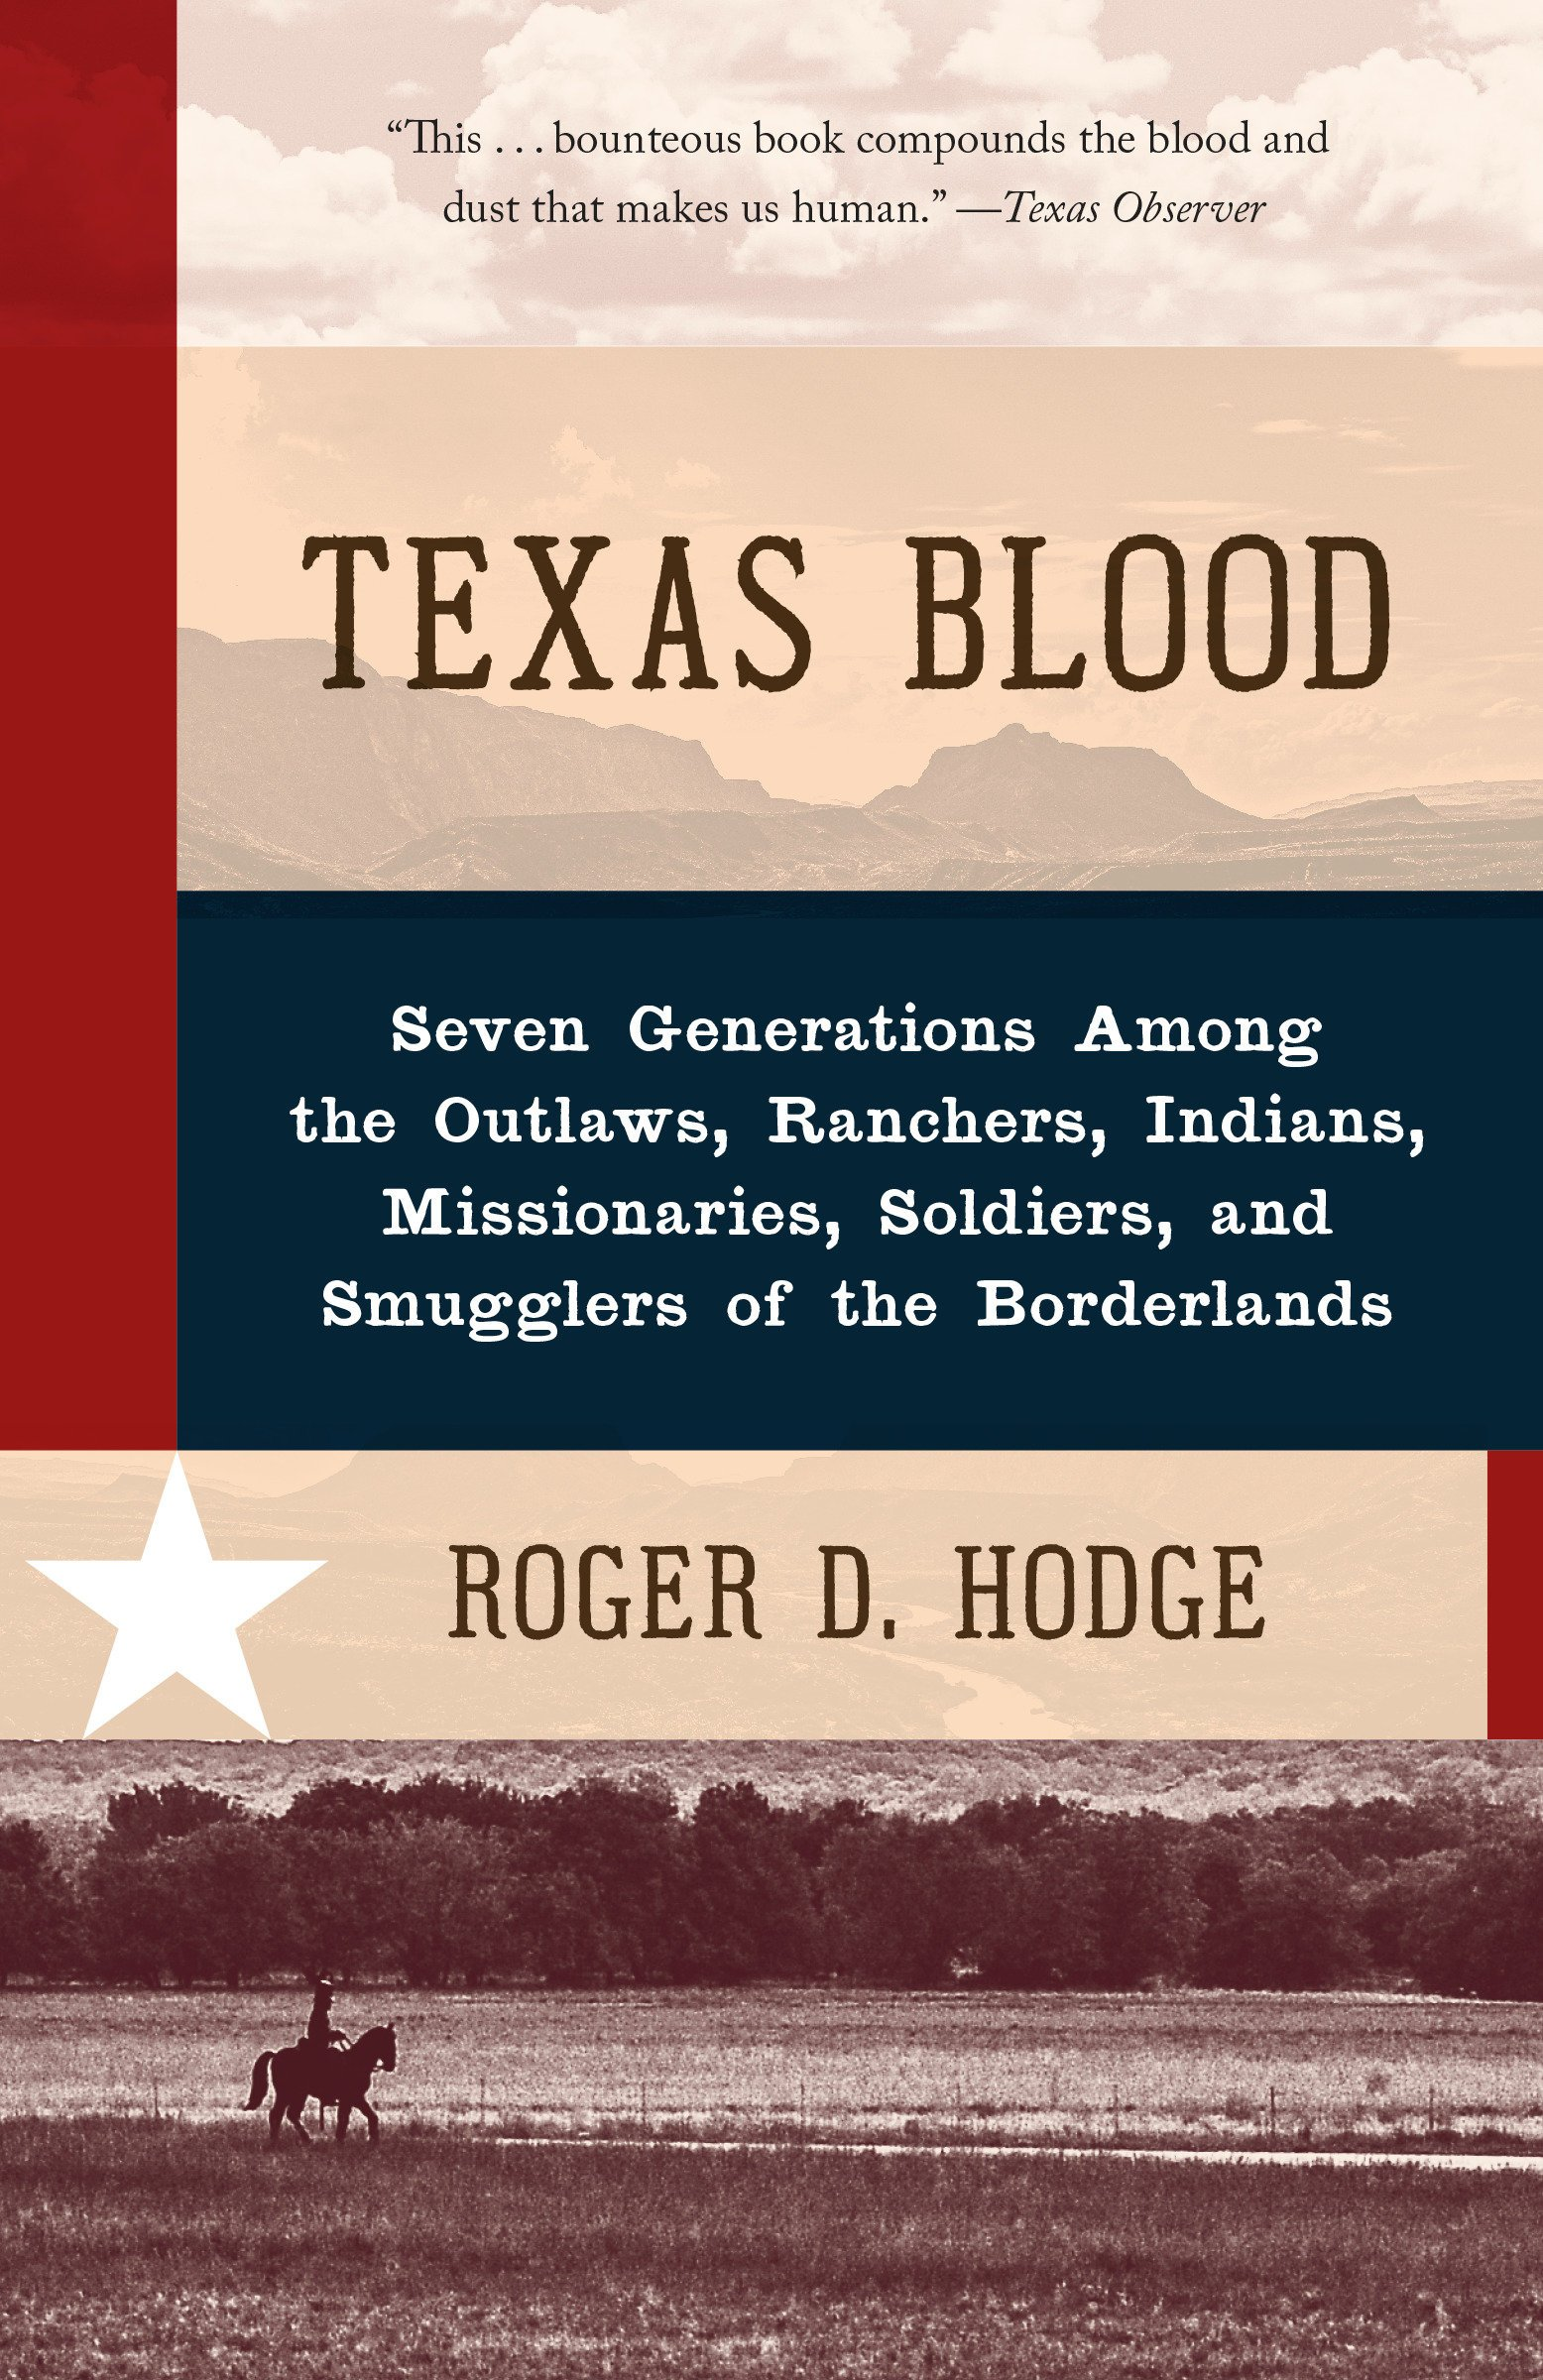 Texas Blood: Seven Generations Among the Outlaws, Ranchers ...